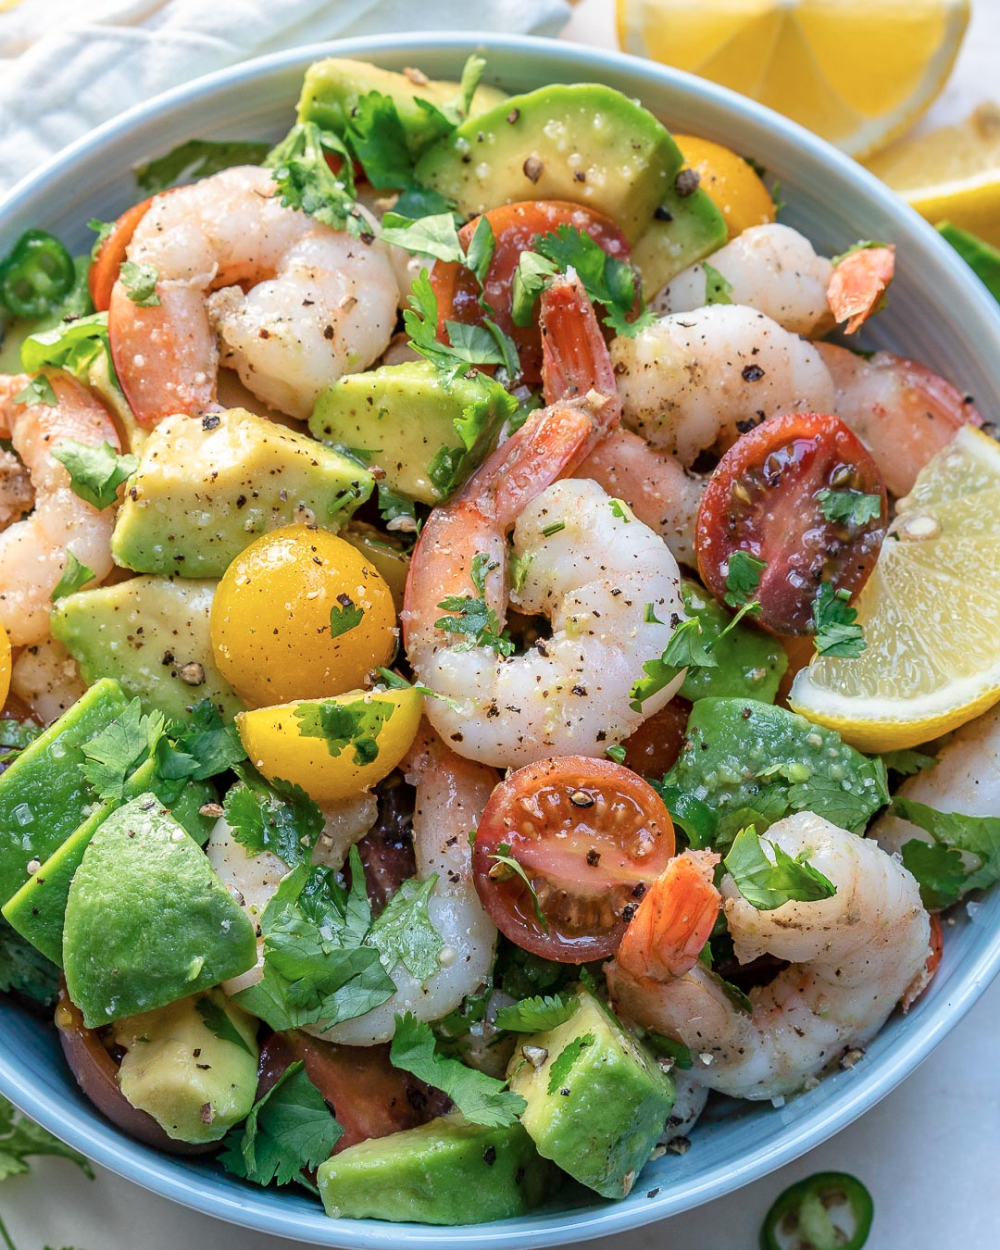 Eat this Lemony Shrimp + Avocado + Tomato Salad for a Clean…